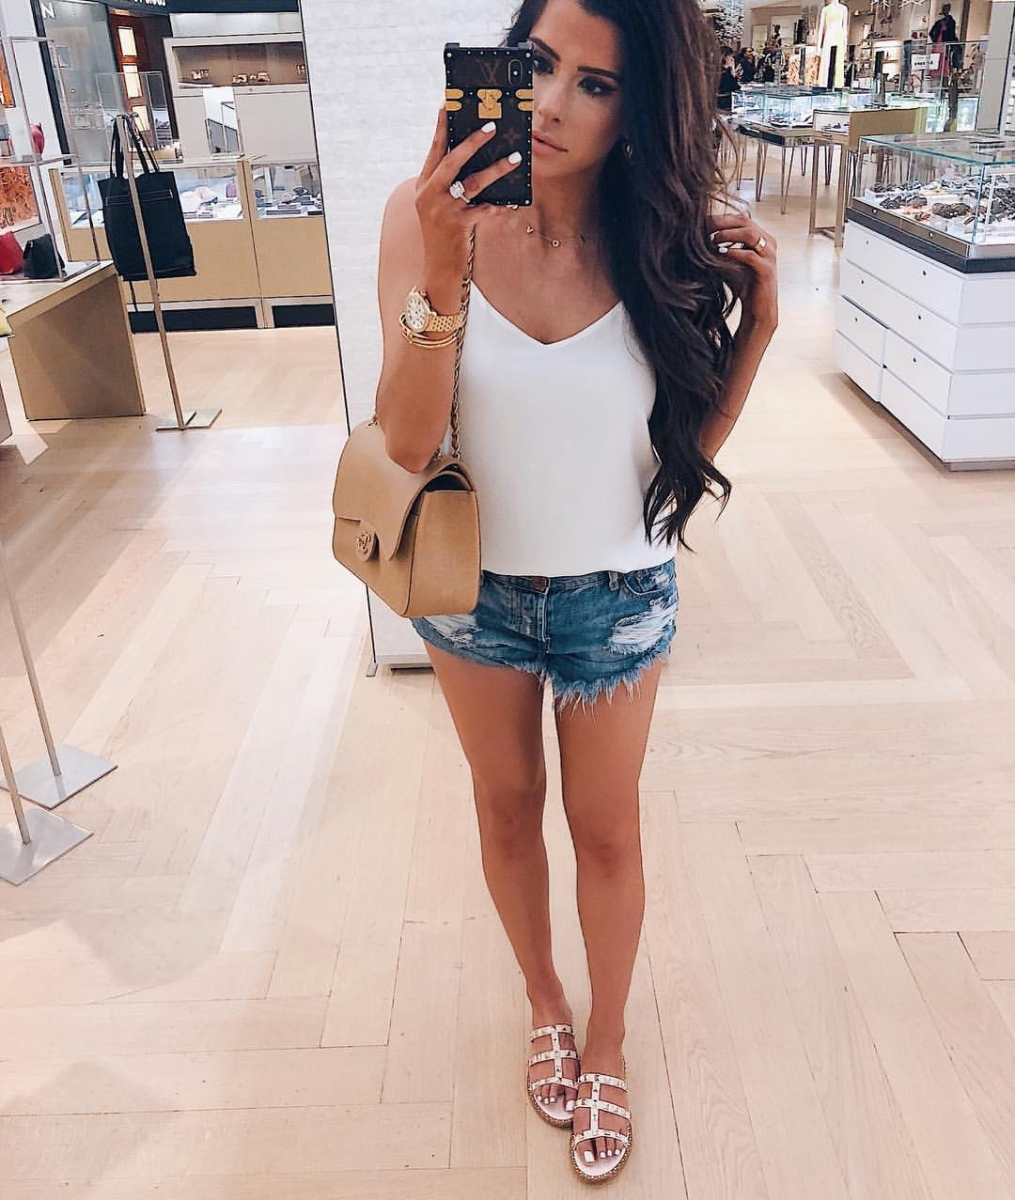 ShopBop Sale by popular US fashion blog, The Sweetest Thing: image of a woman wearing a pair of ShopBop One Teaspoon Hendrix Bandit Shorts.